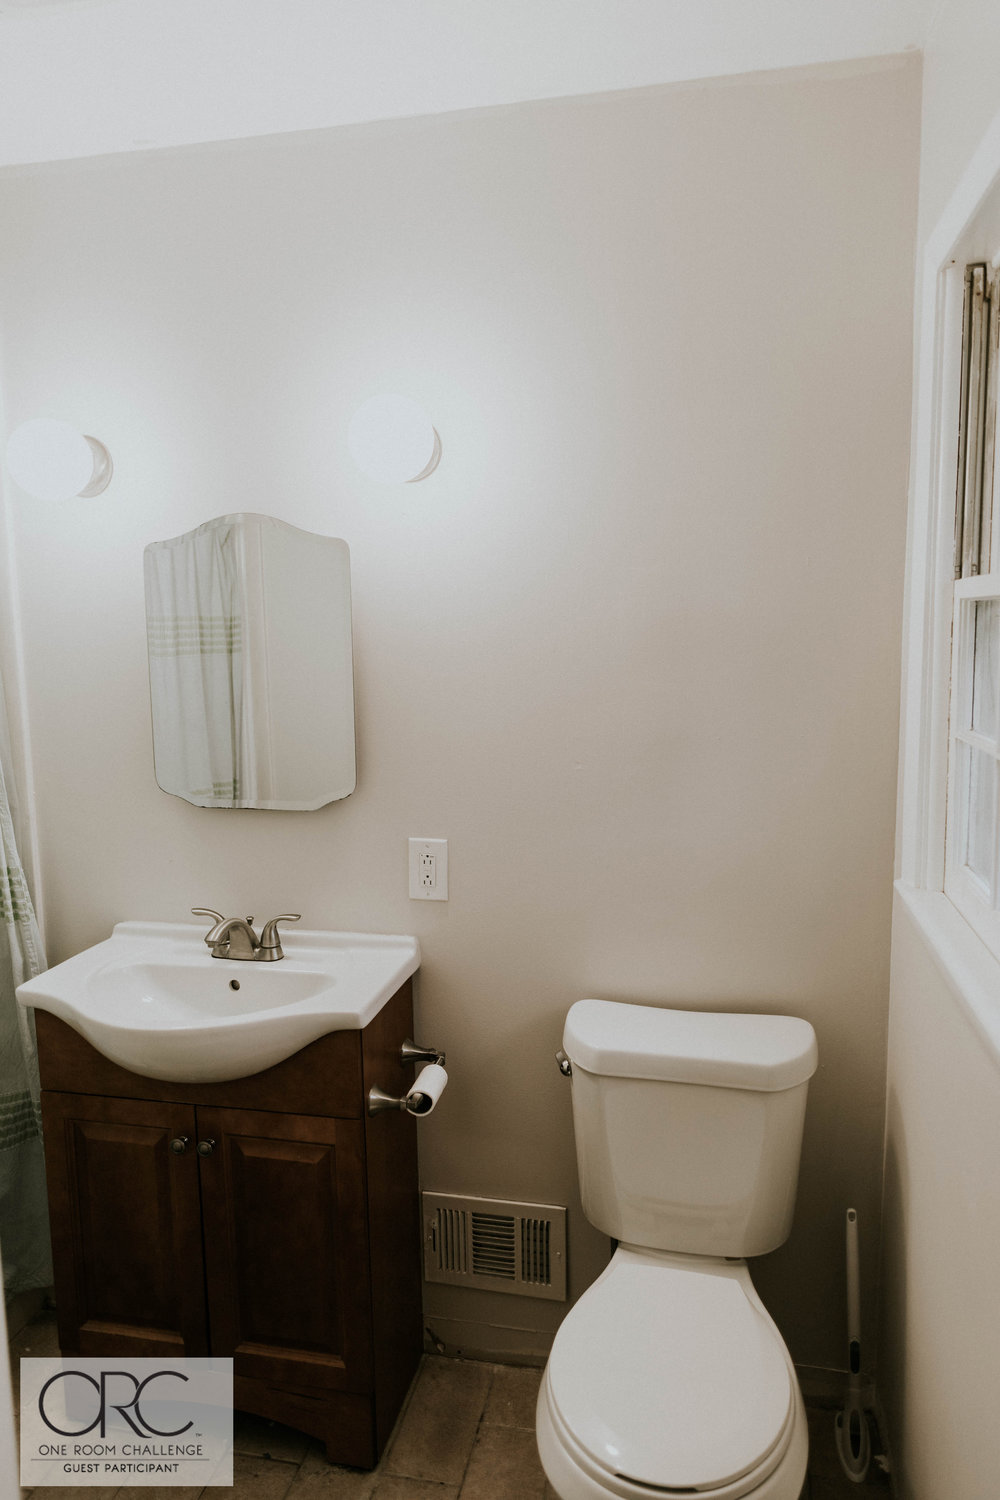 GUEST PARTICIPANT ONE ROOM CHALLENGE MASTER BATHROOM 2 (1 of 1).jpg